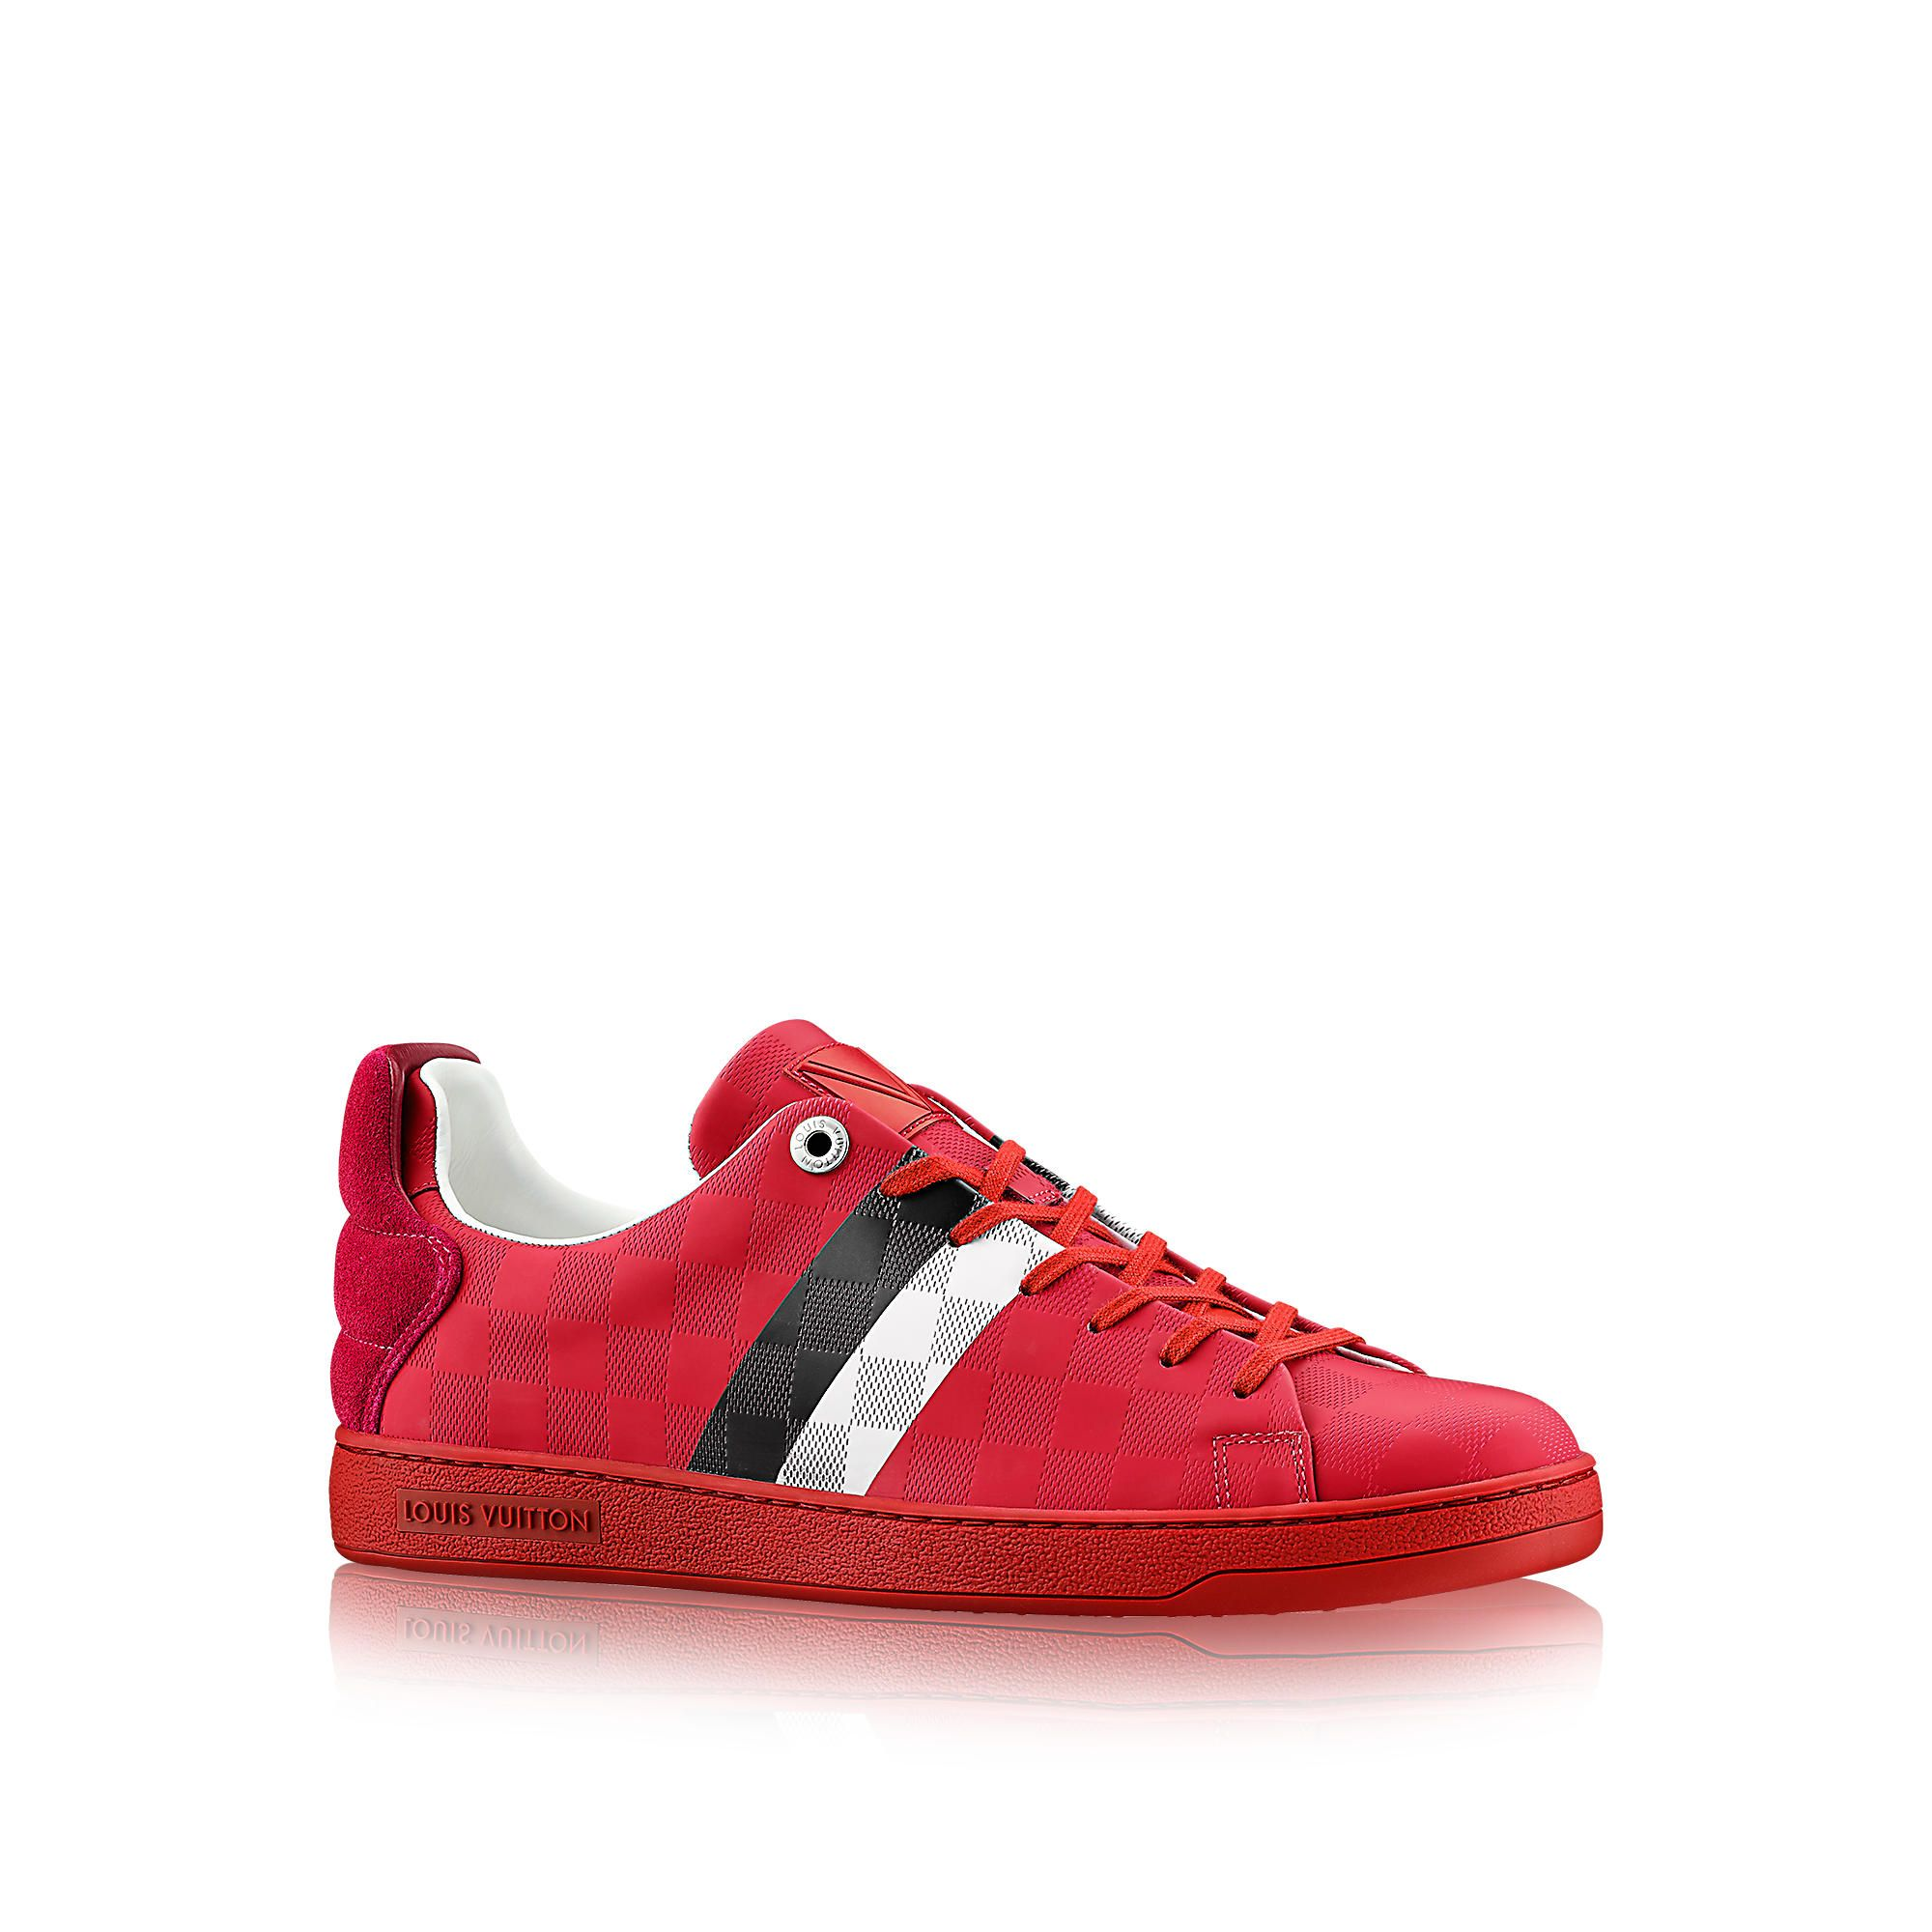 c4e73cc069bd2e key product page share discover product Frontrow Sneaker via Louis Vuitton